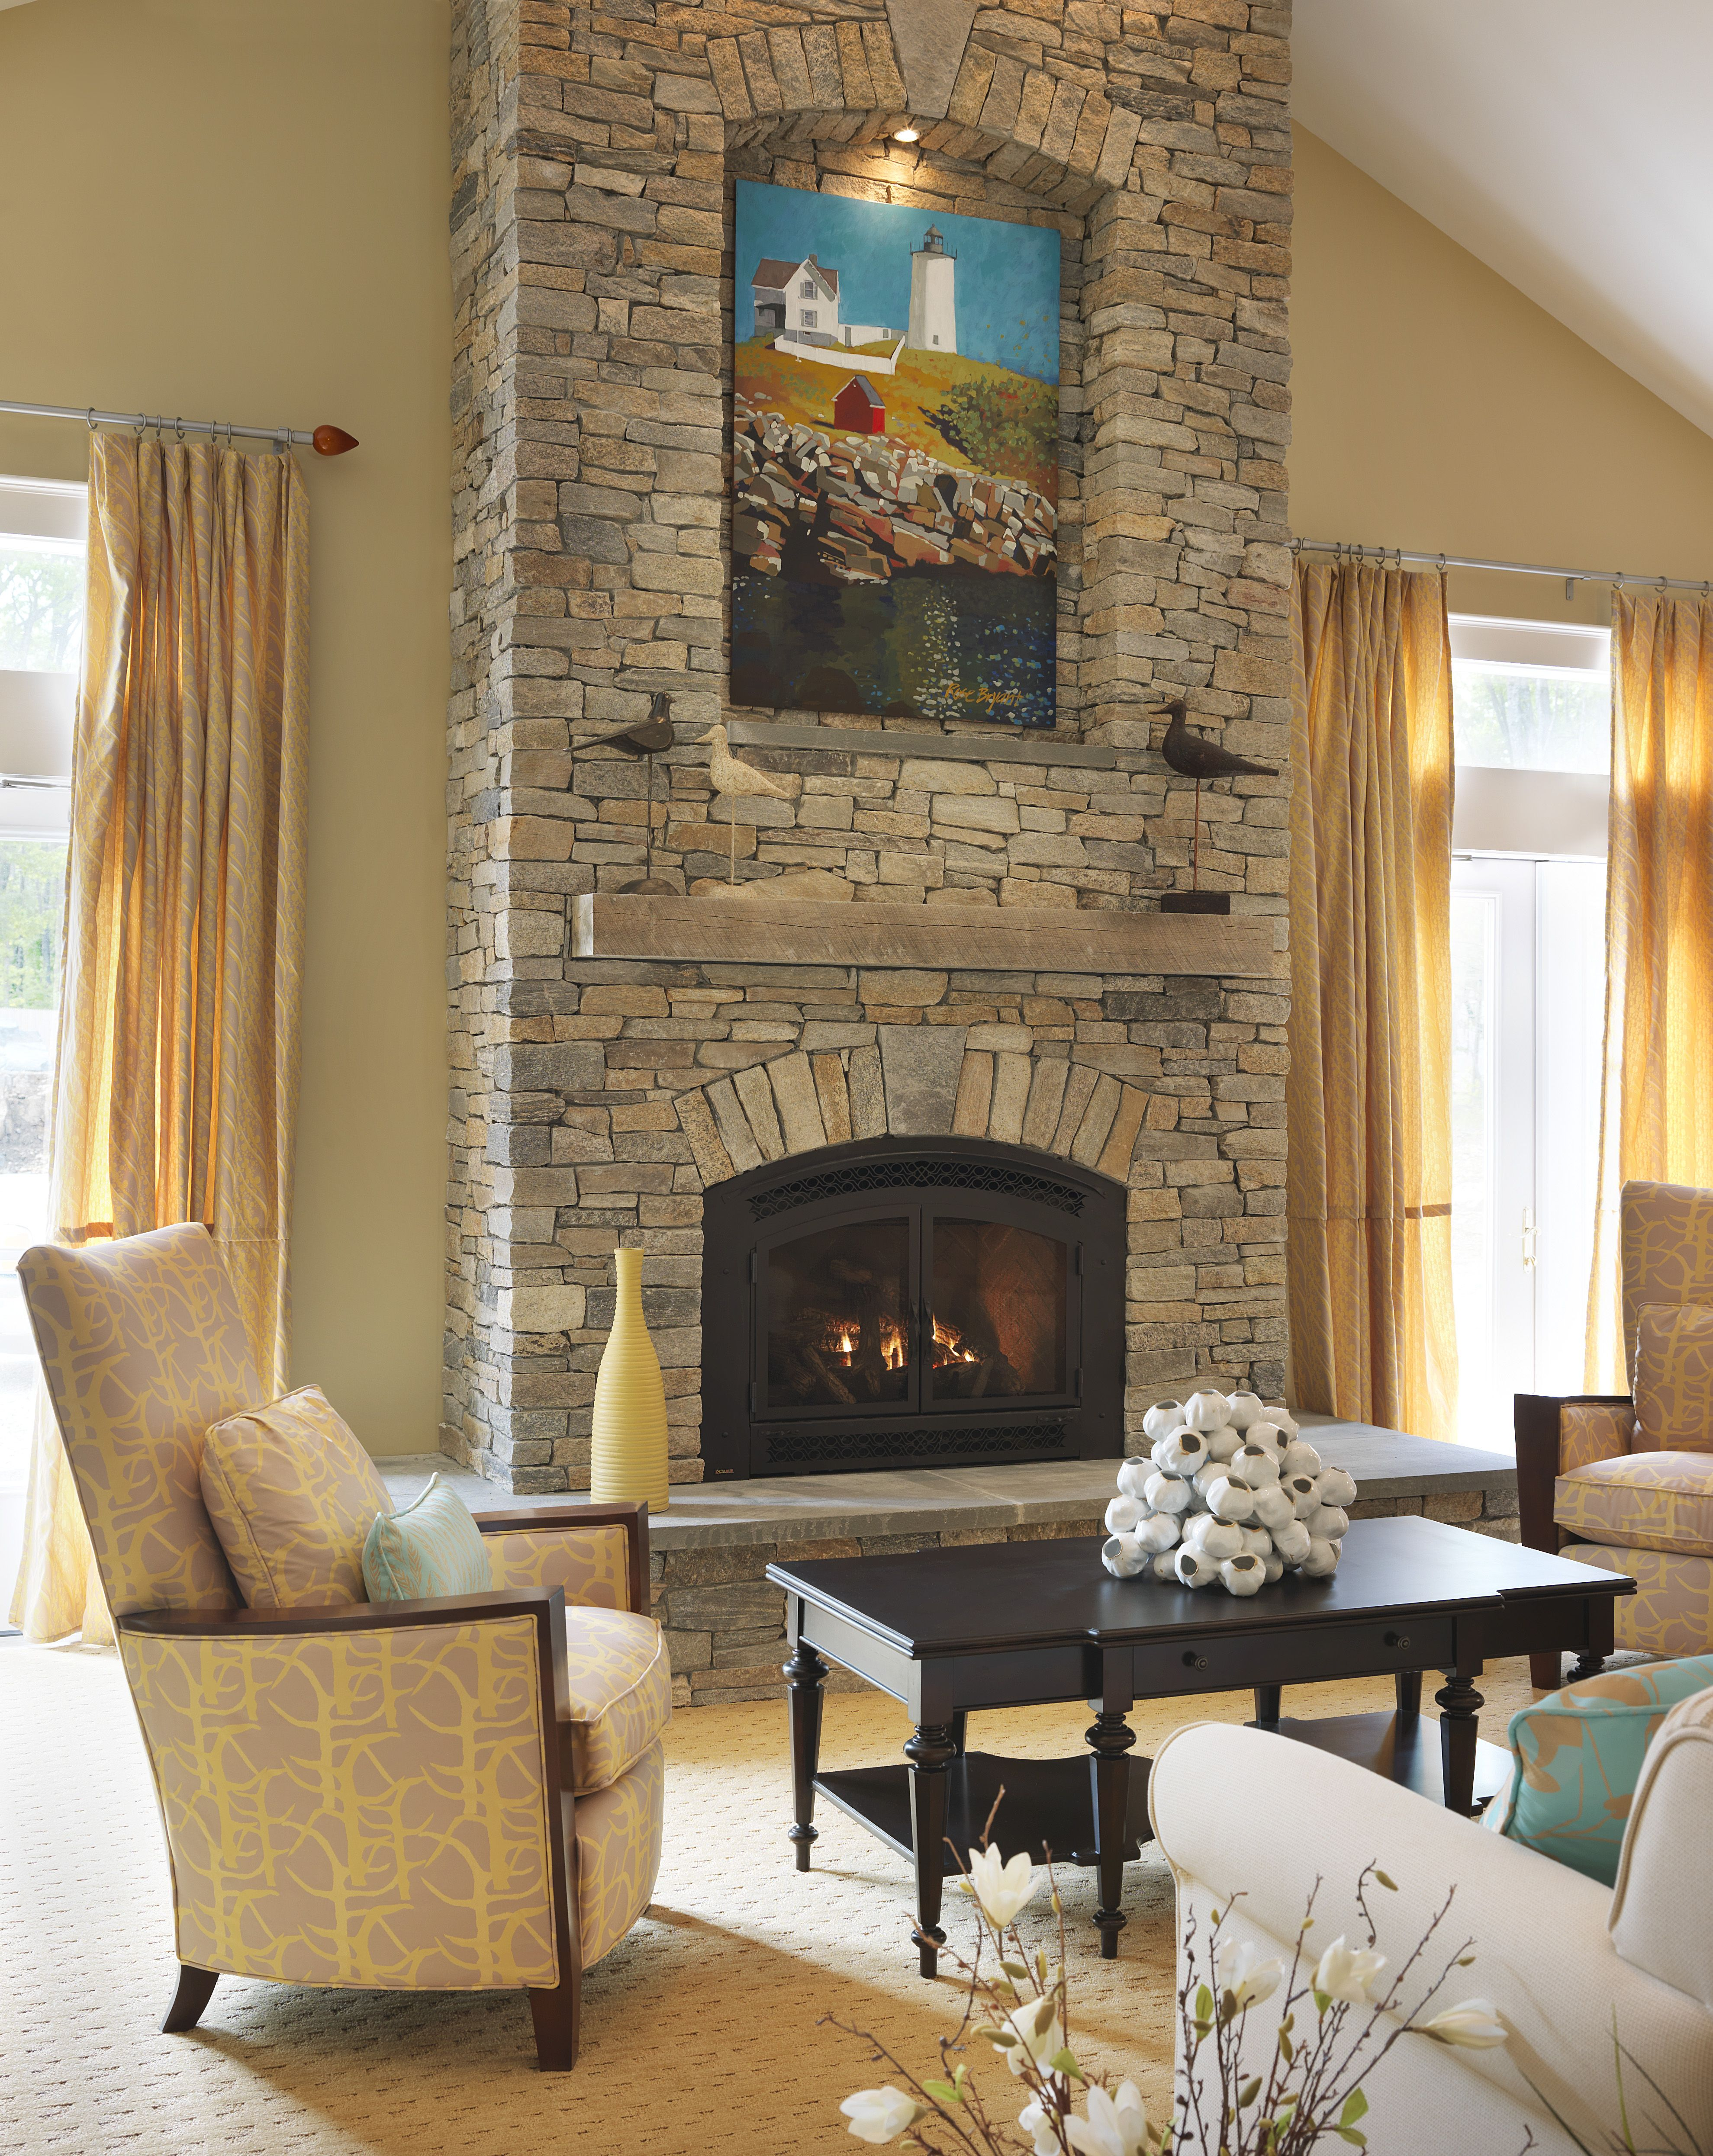 Fireplaces Great Rooms And Room: The Great Room Features A Stacked Stone Floor To Ceiling Fireplace With A Commission Painting Of